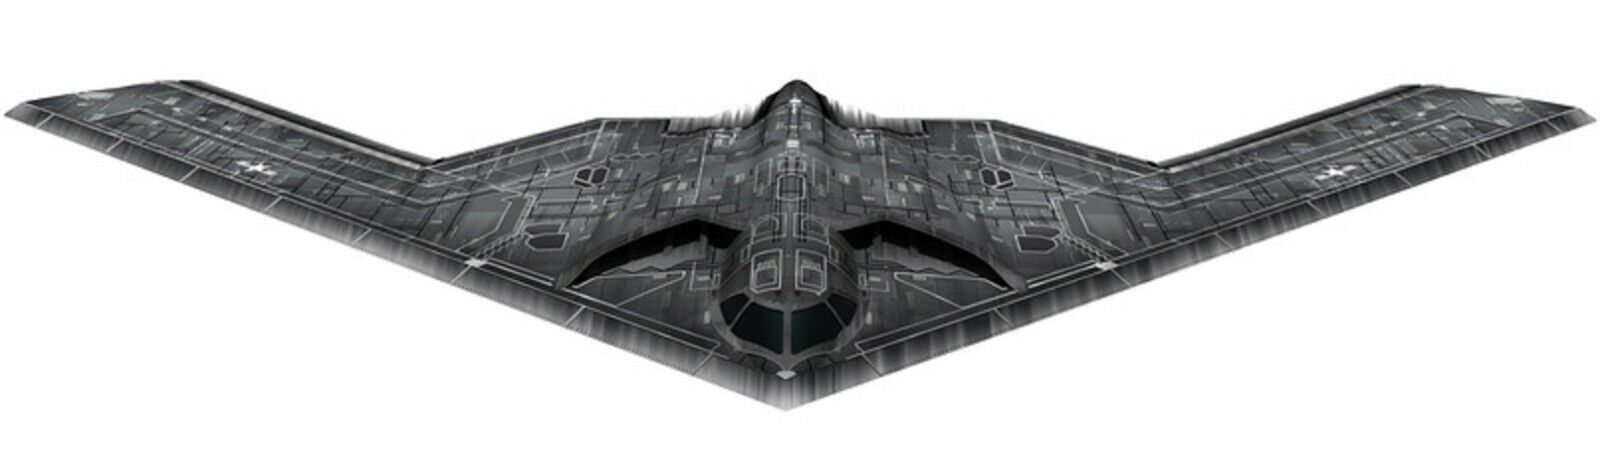 Details about  /COMBINED TEST FORCE XVII PRAENUNTIUS B-21 Raider Stealth Bomber blue velkrö SSI